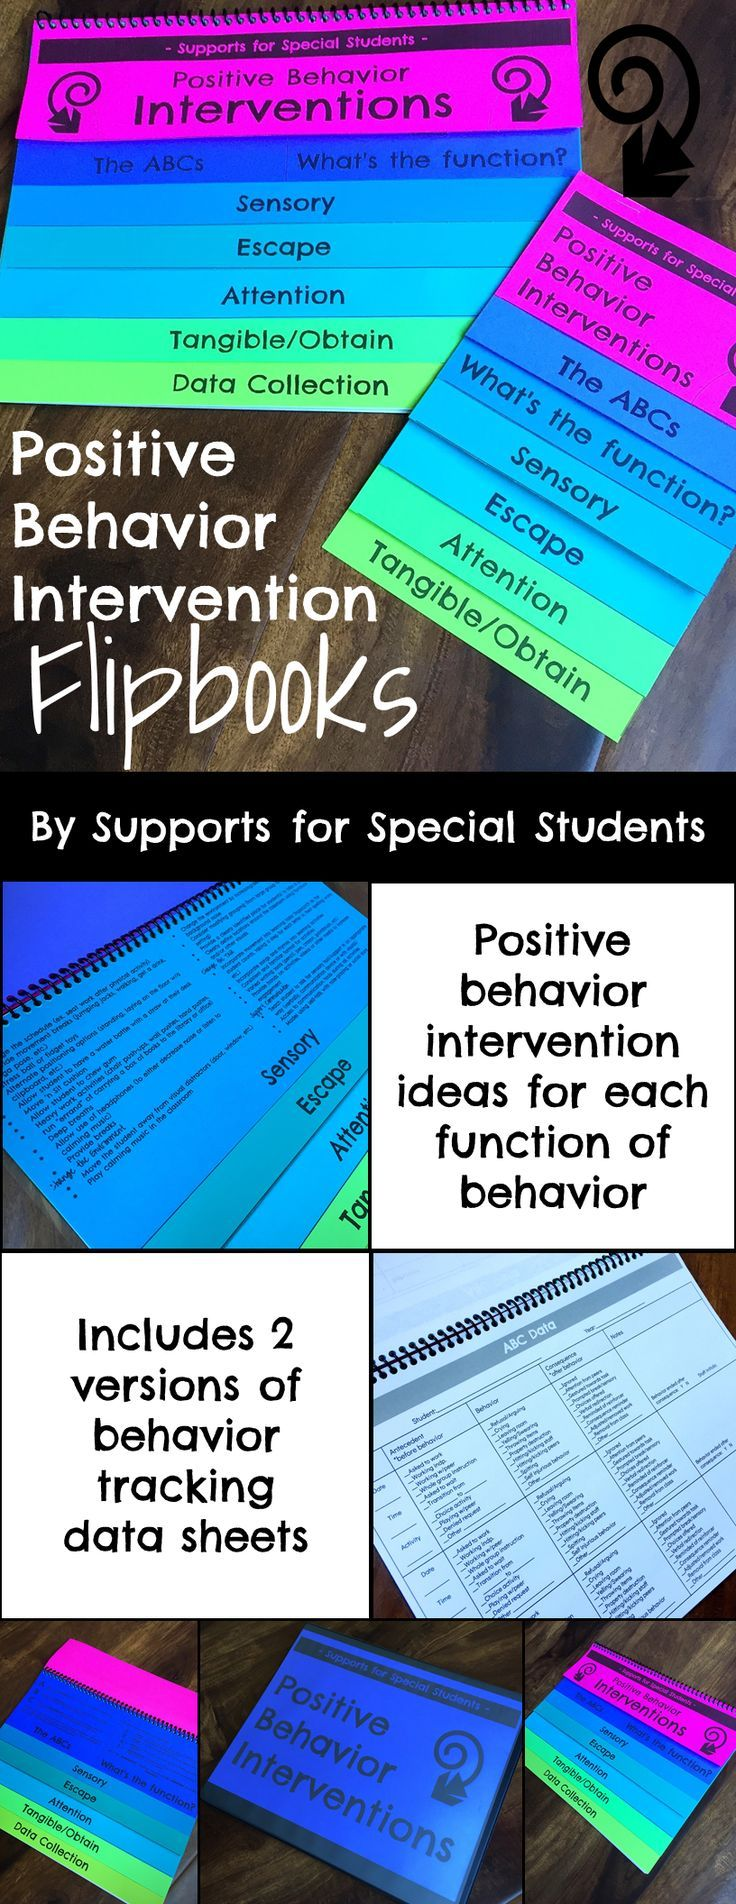 This flipbook is packed full of easy to implement positive behavior supports and interventions! You will find a brief overview of the ABC's (antecedent - behavior - consequence), how to determine the function of behavior, and specific intervention to addr